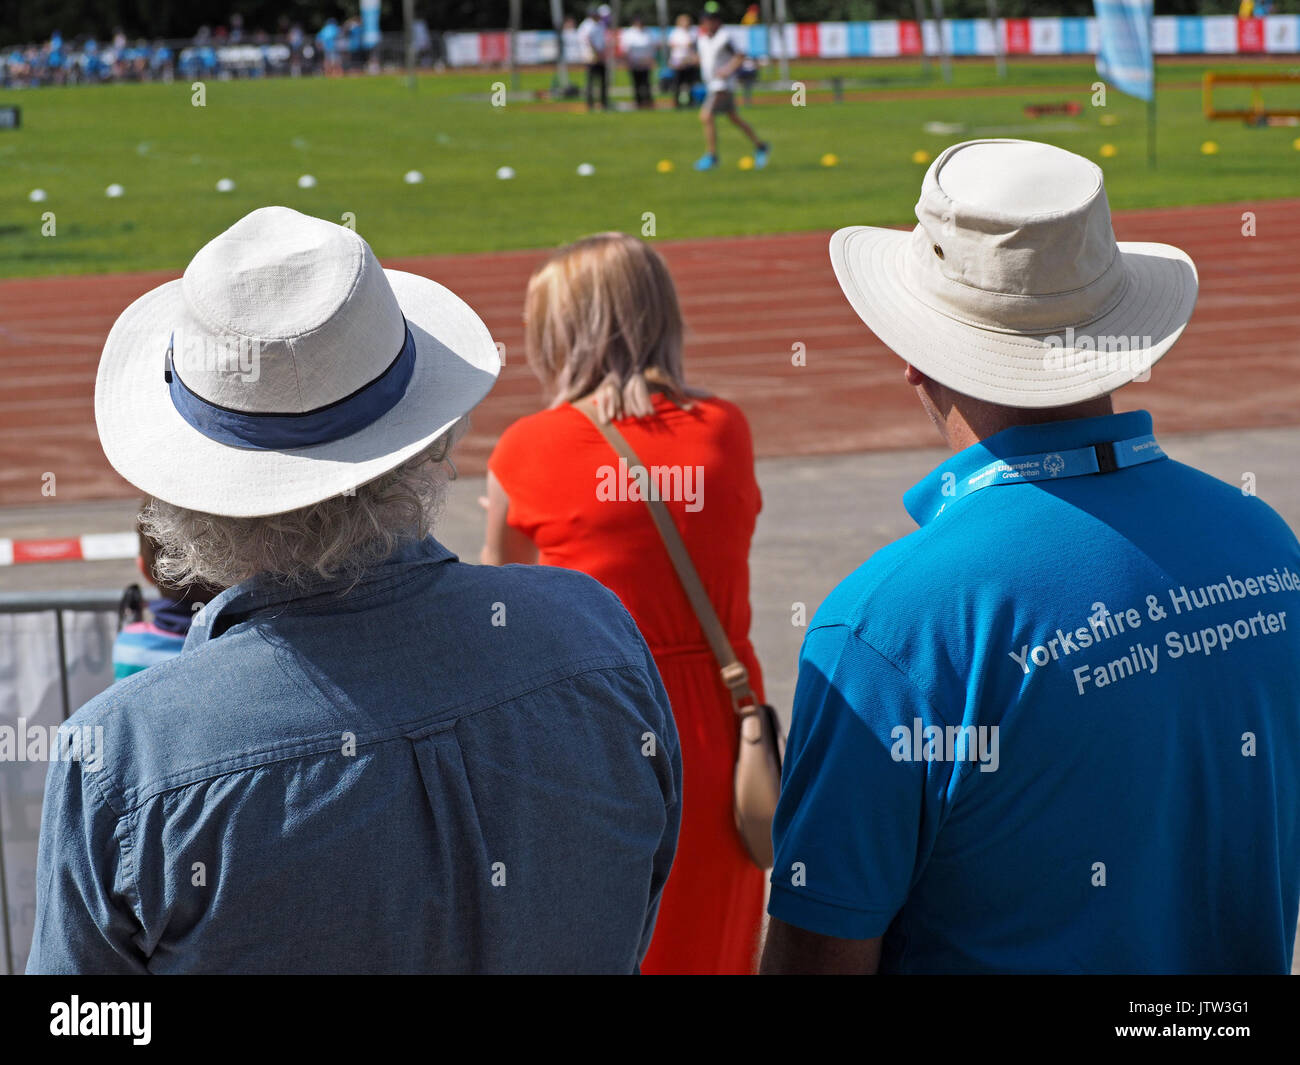 Sheffield, UK. 10th August, 2017. Spectators in sunhats watching athletics at Special Olympics National Games in - Stock Image